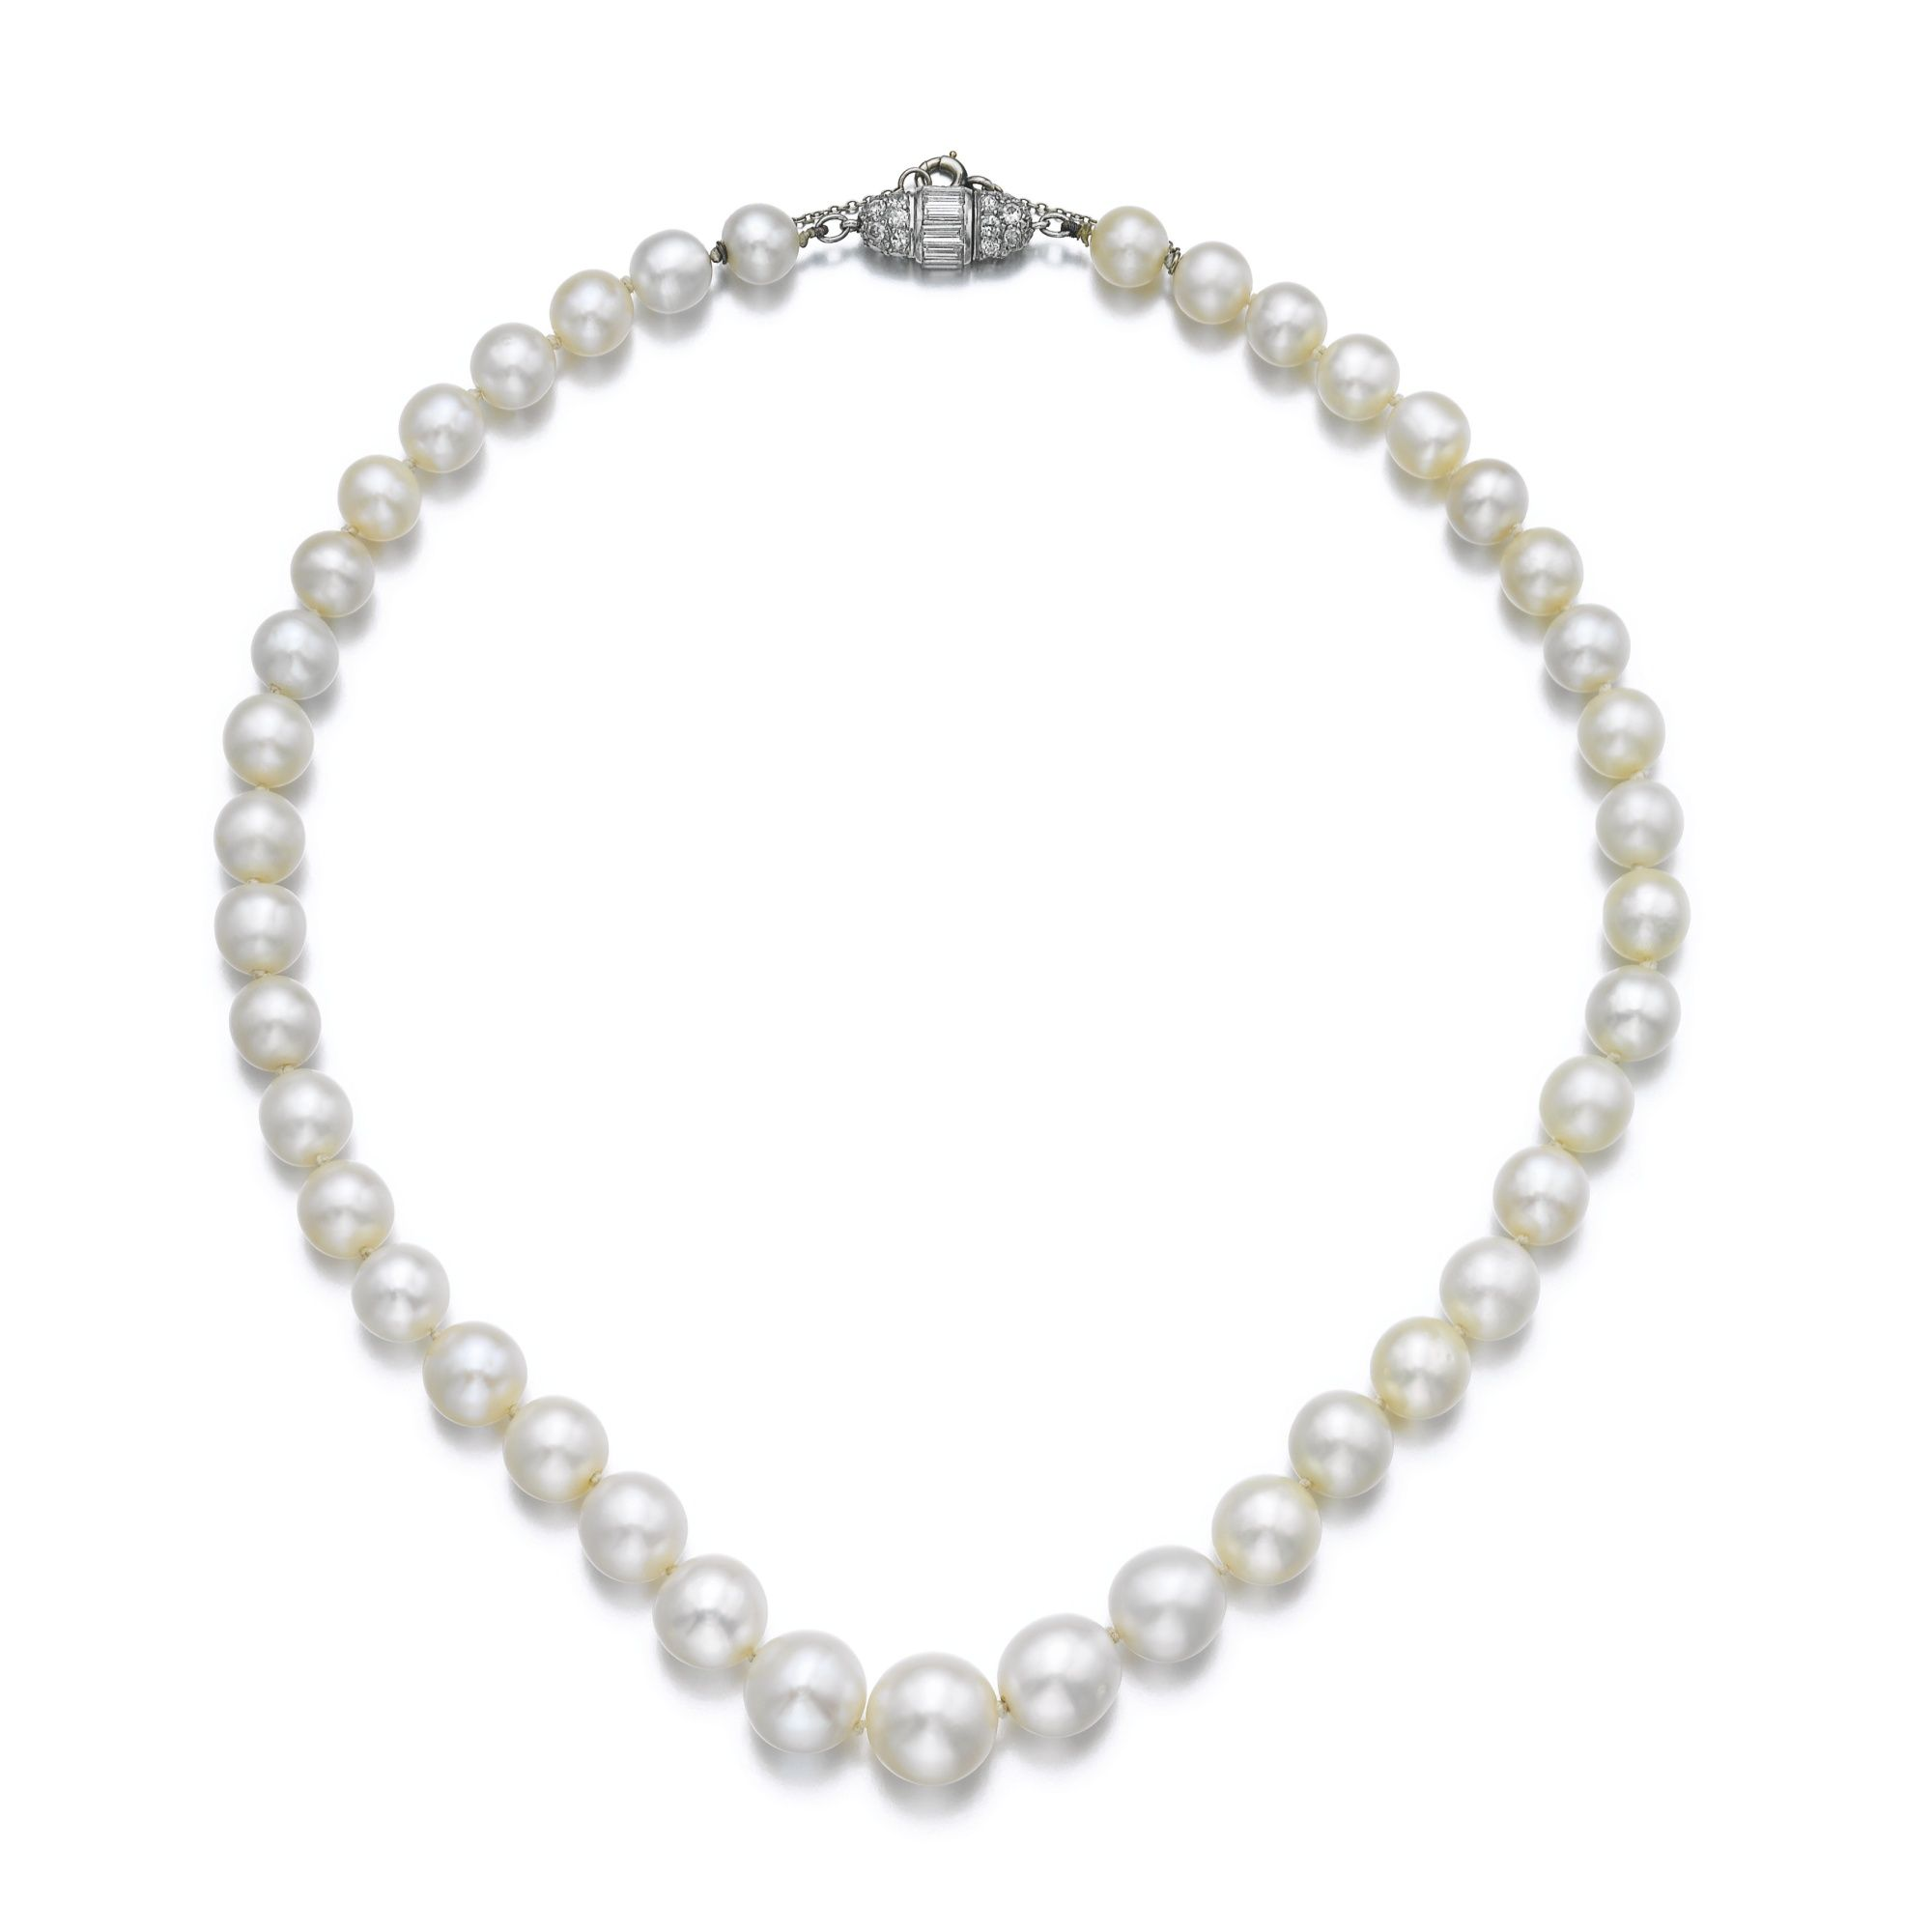 Natural pearl and diamond necklace, Chaumet | lot | Sotheby's